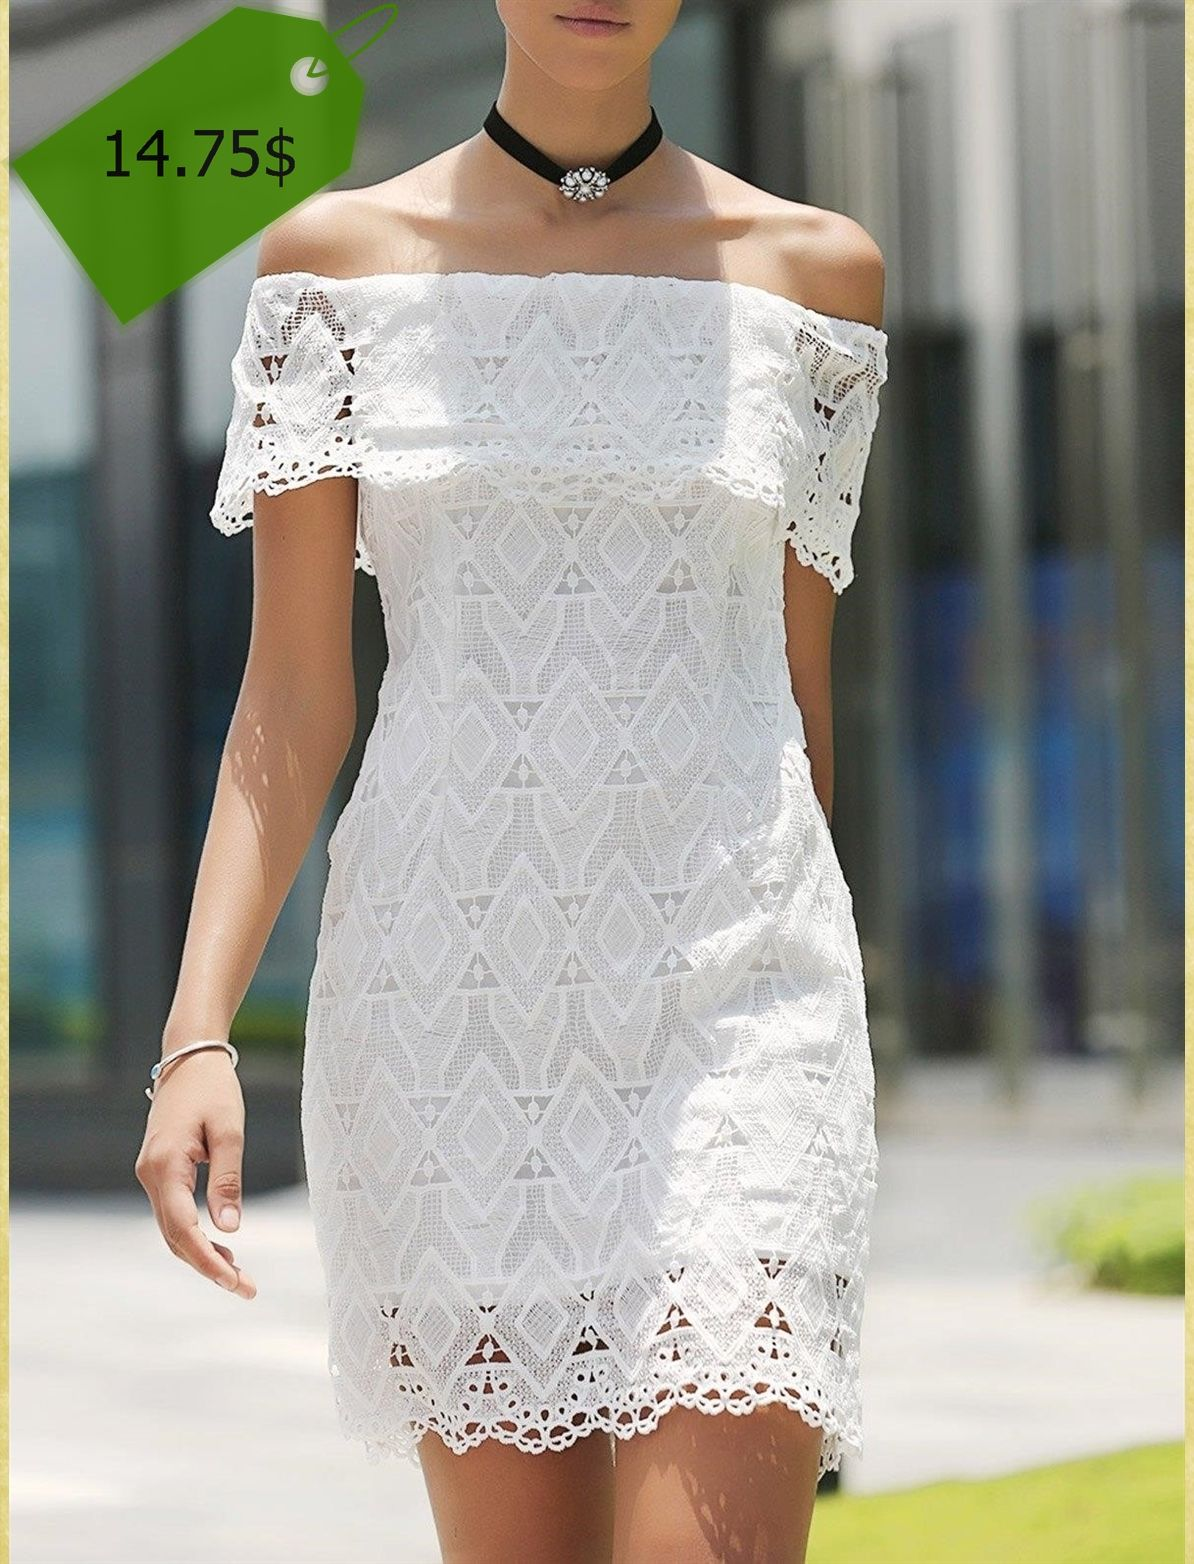 Lace dress styles for funeral  Fashionable Short Sleeve Off The Shoulder Lace Dress For Women